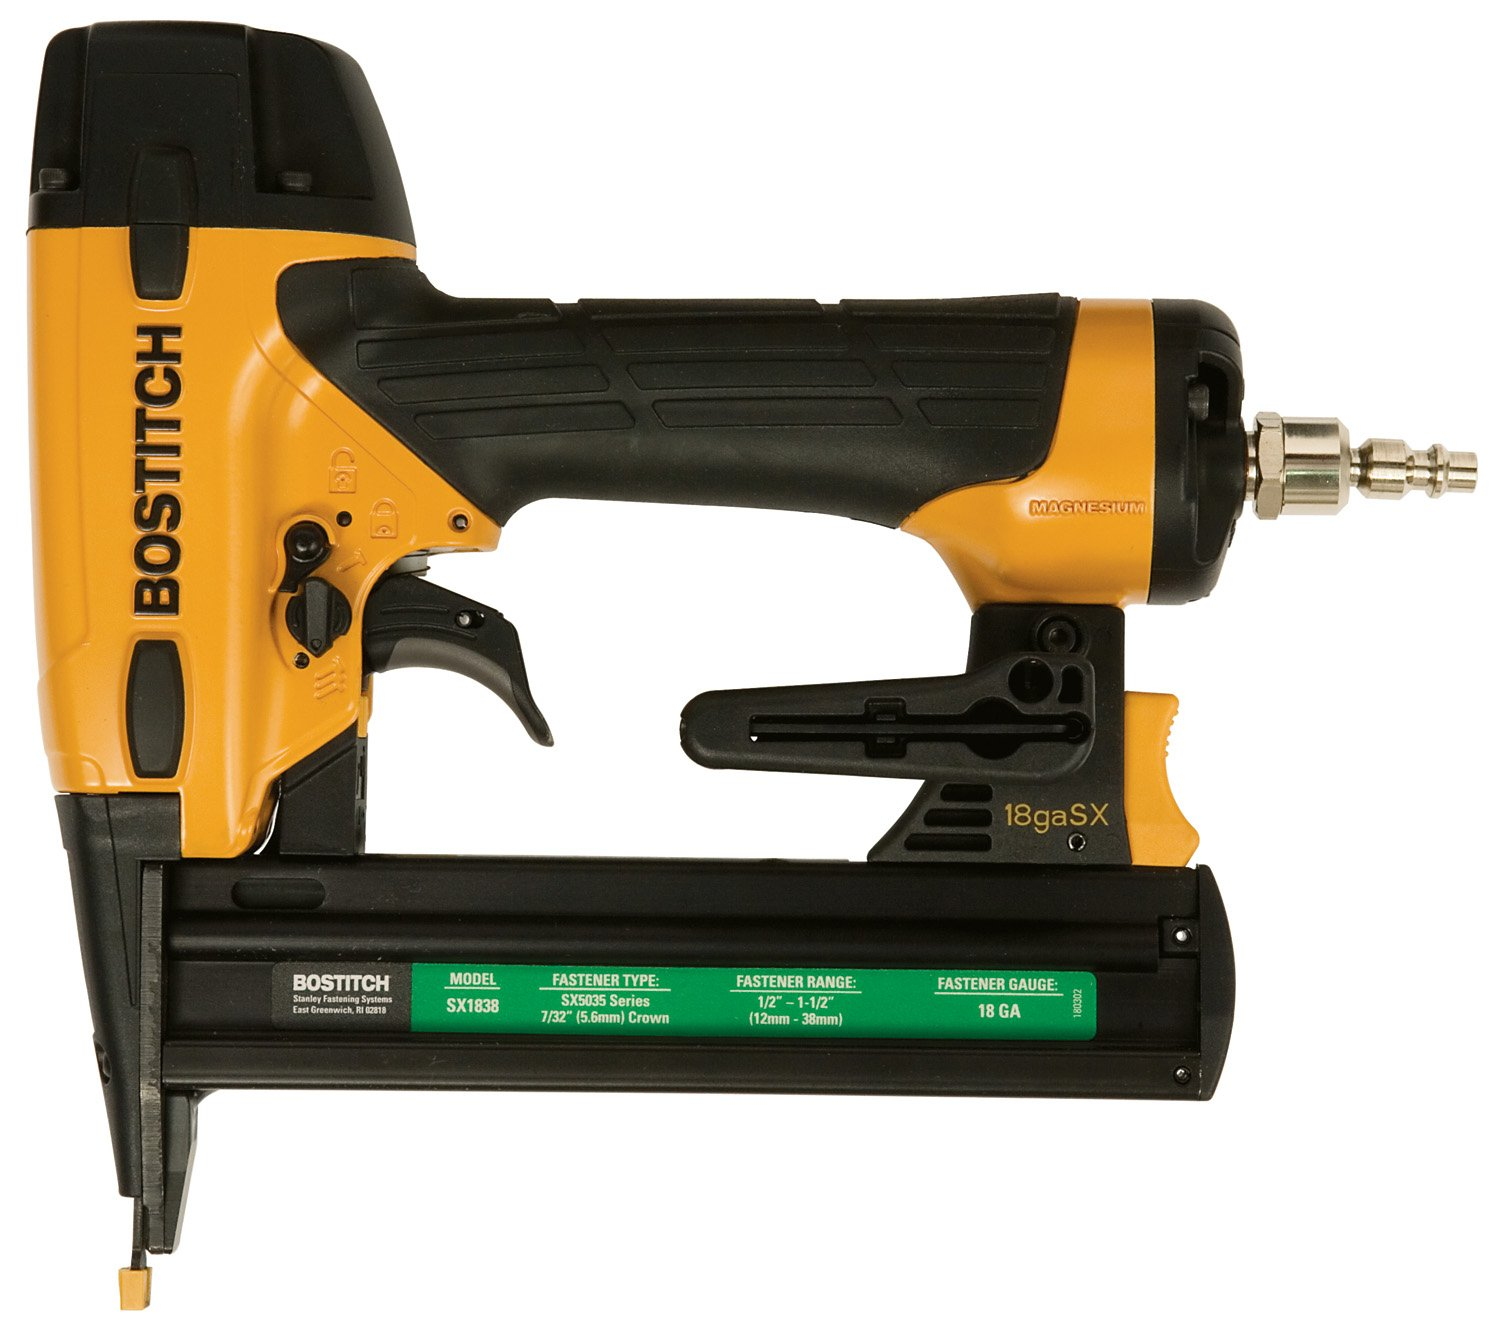 Bostitch U/SX1838K 18 Gauge 7/32-in Crown 1-1/2-in Oil-Free Narrow Crown Finish Stapler Kit RECONDITIONED USX1838K